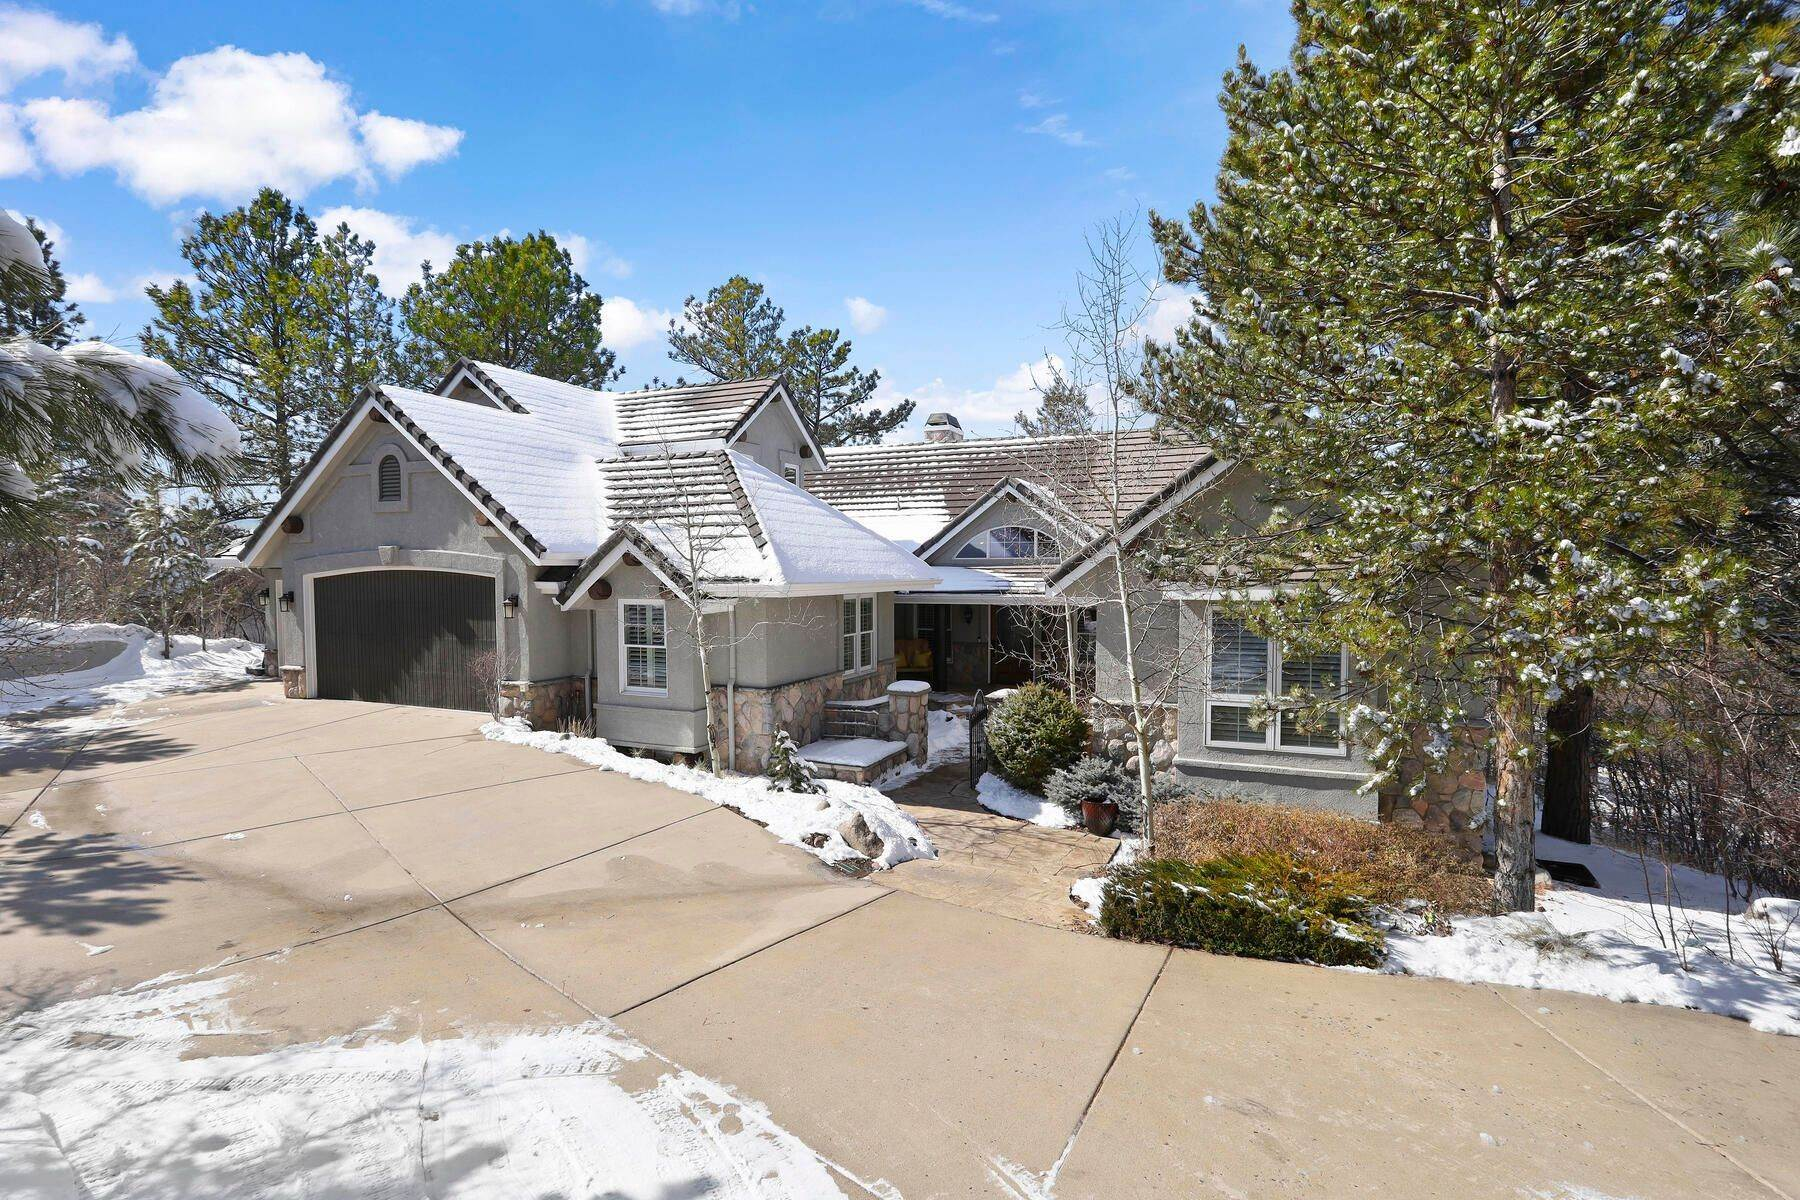 Single Family Homes for Sale at 898 Anaconda Court, Castle Rock, Co, 80108 898 Anaconda Court Castle Rock, Colorado 80108 United States